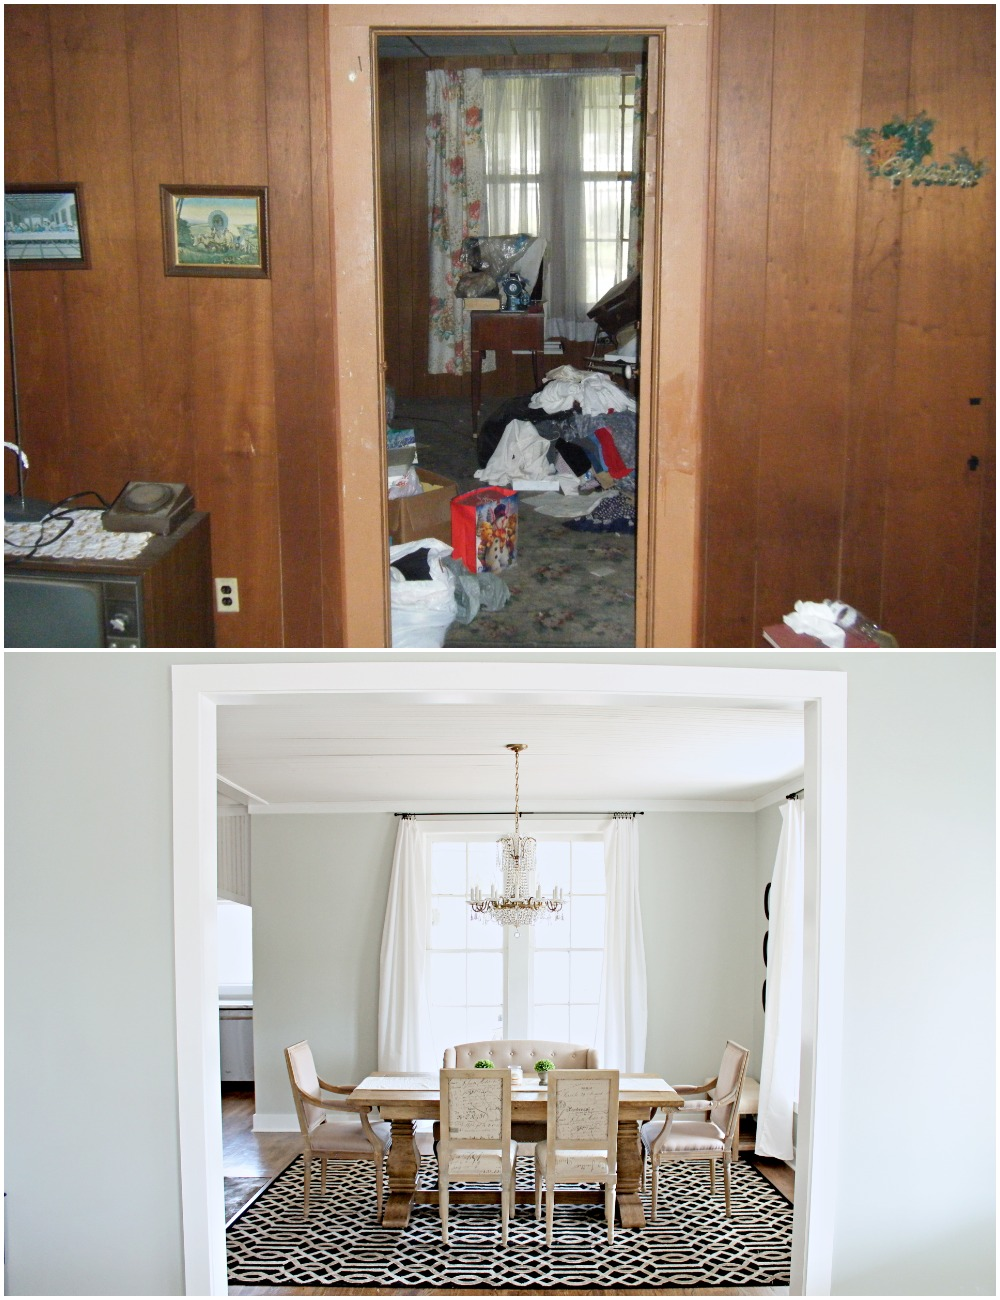 Elizabeth Burns Design  Budget-Friendly Fixer Upper Farmhouse Before and After House Flip - DIY Dining Room with Exposed Brick Fireplace - Sherwin Williams Silver Strand (6).jpg